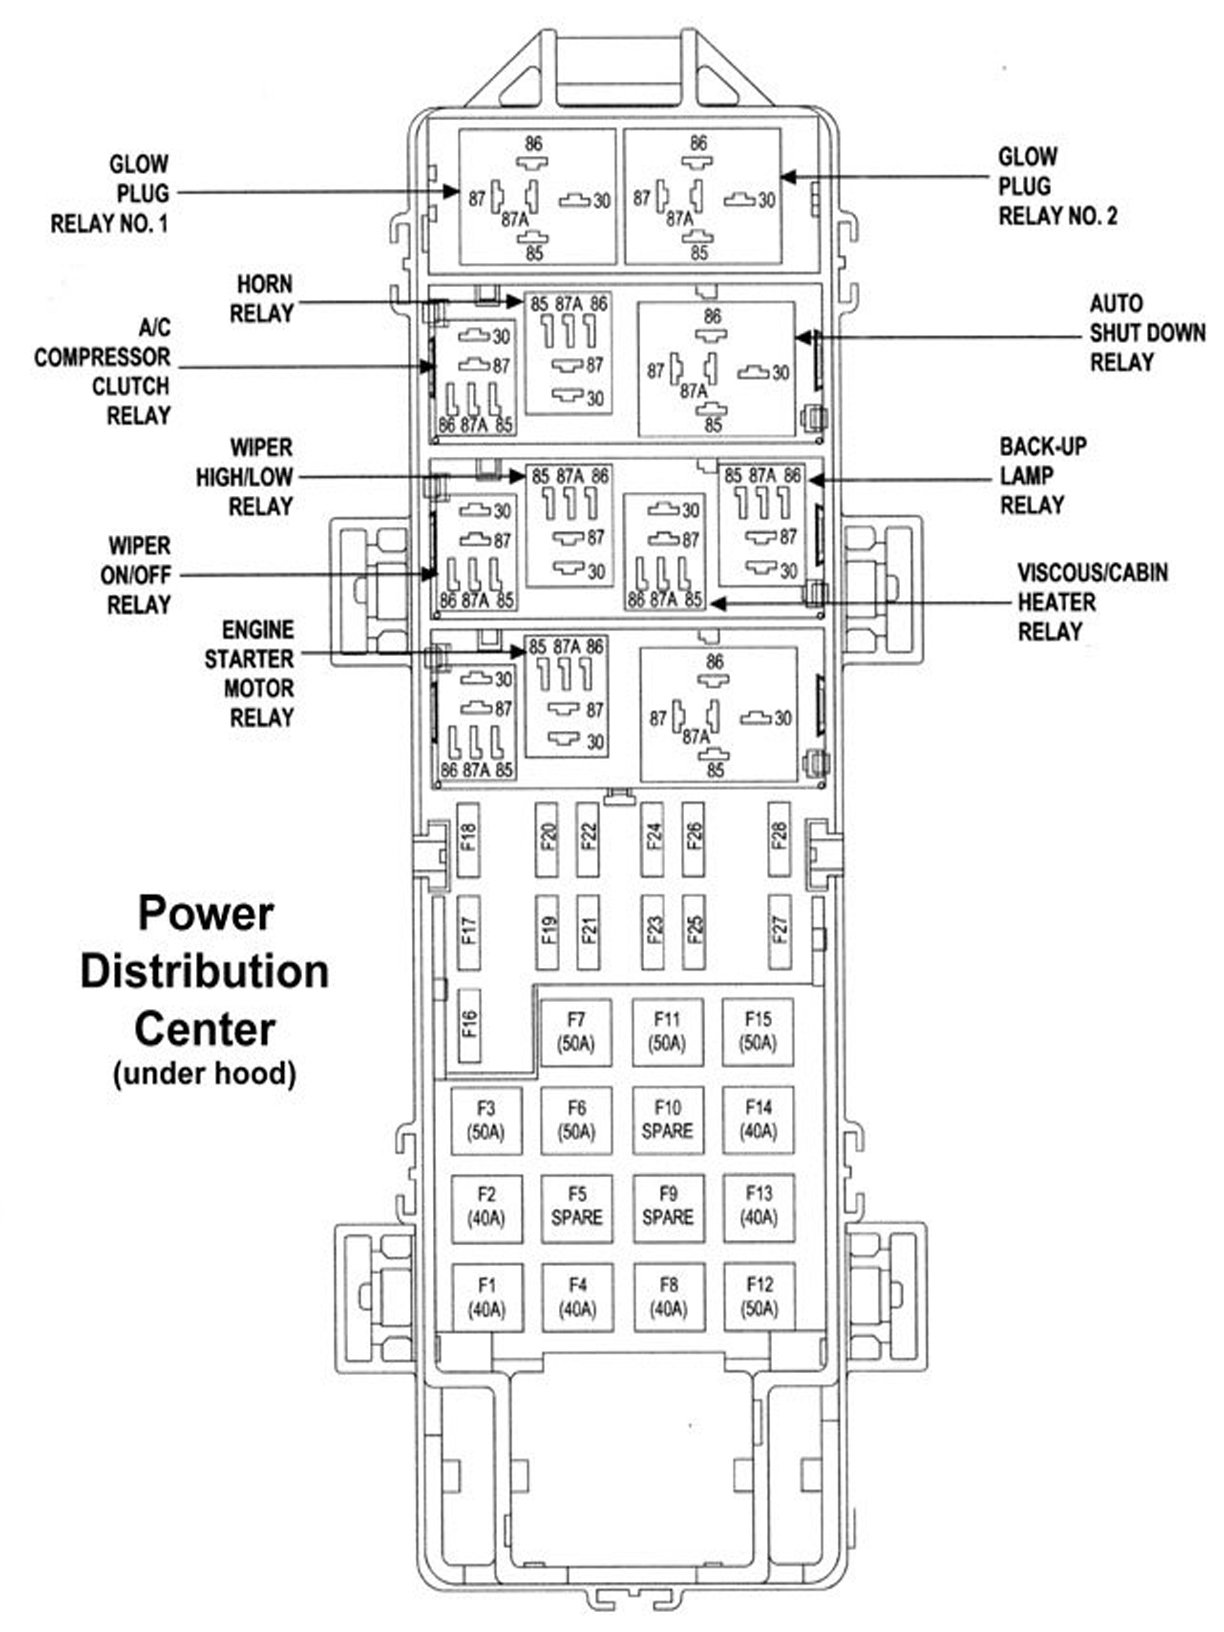 1996 xj fuse box diagram 1996 jeep fuse box index fokus rundumpodcast de  1996 jeep fuse box index fokus